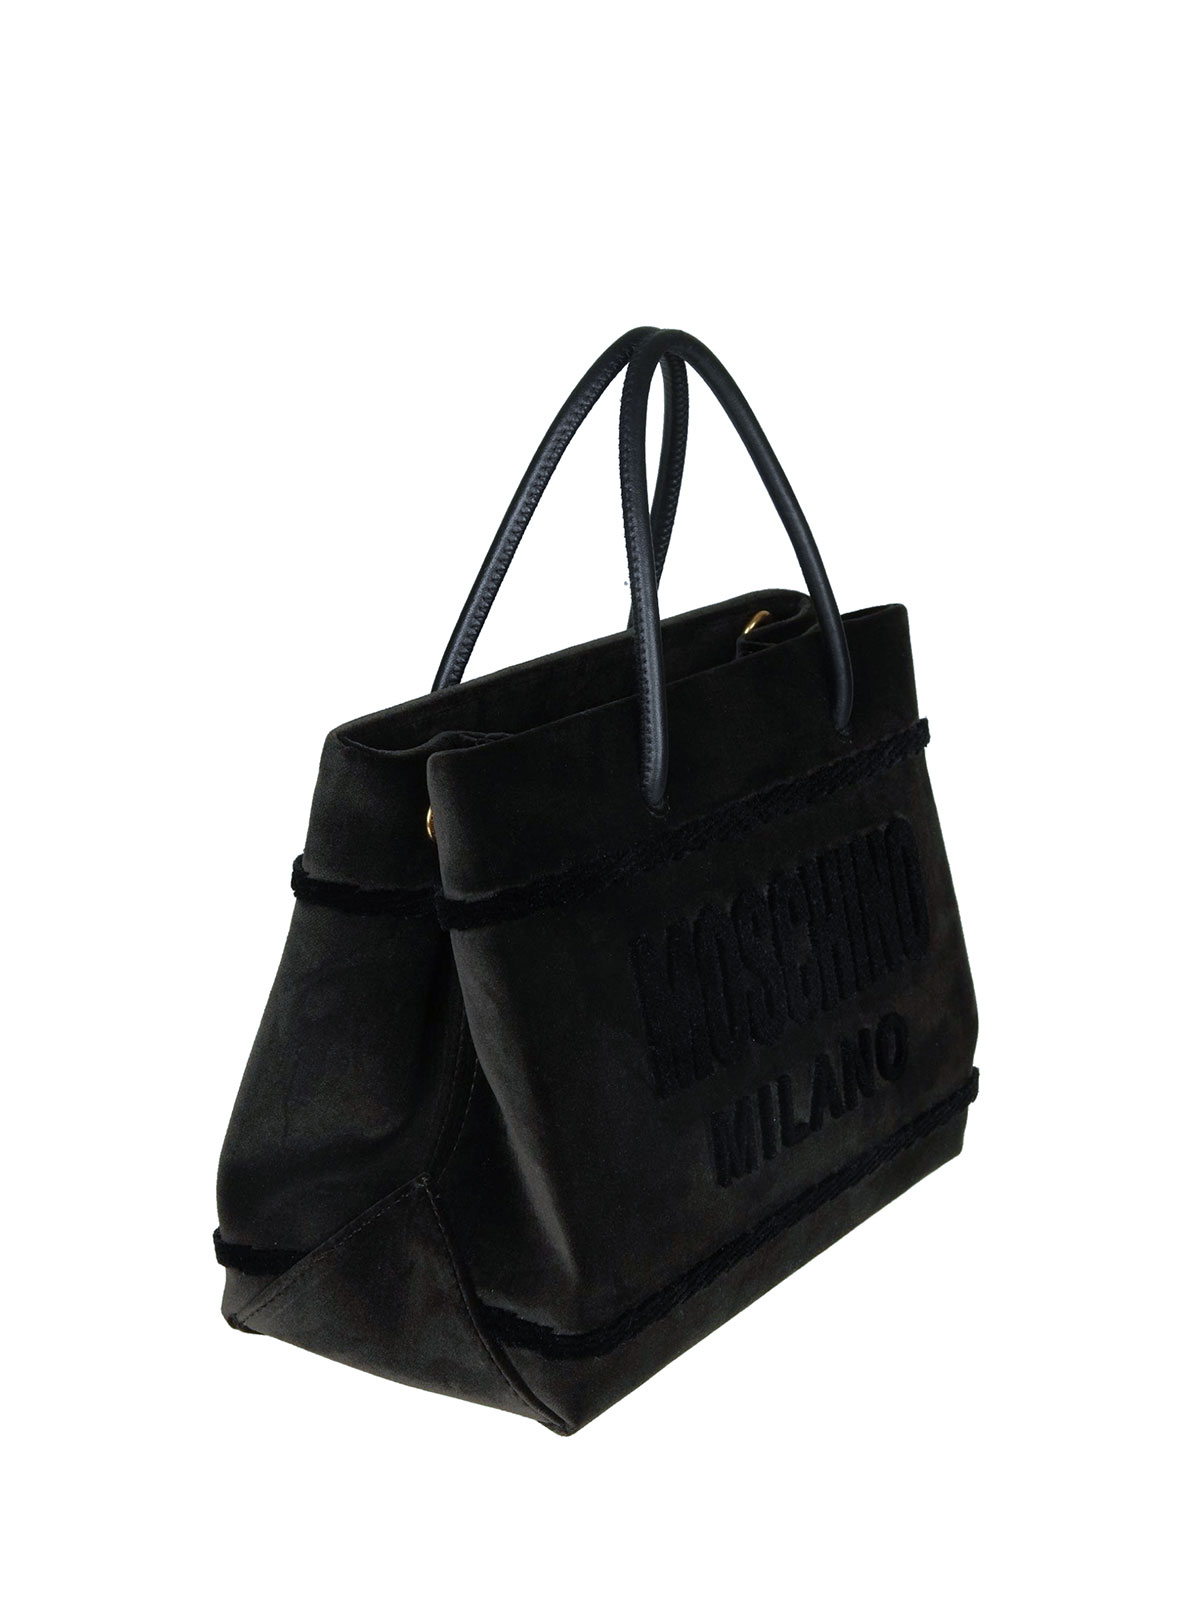 41f4a733dadc Moschino - Musk velvet signature tote - totes bags - A748682113440